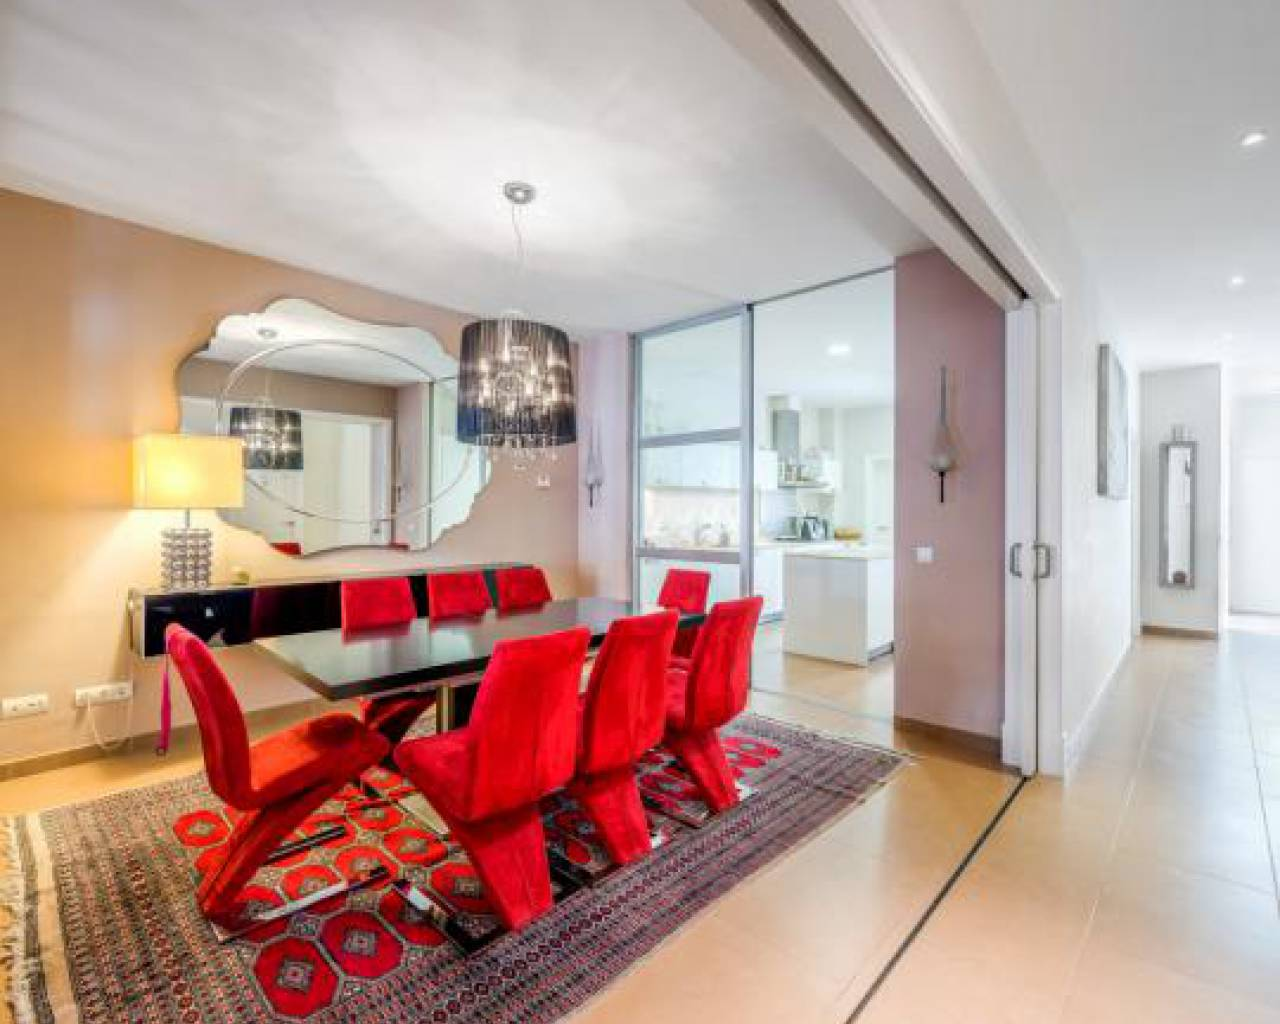 Property for rent in Palma de Mallorca